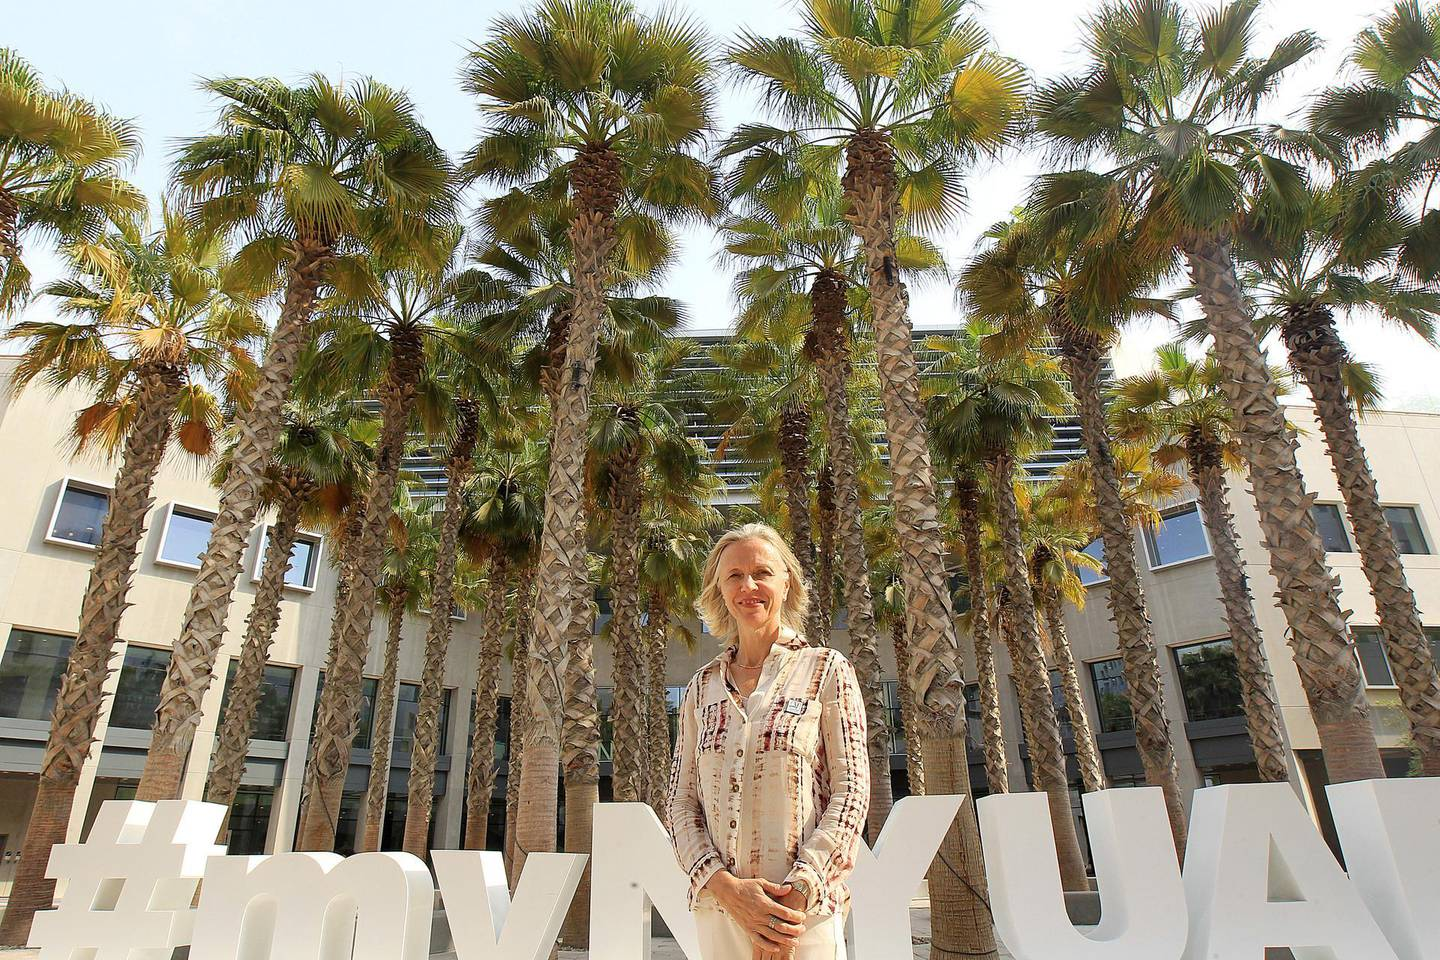 Abu Dhabi, October, 10 2019: Mariet Westermann the new Vice Chancellor of NYU Abu Dhabi pose during the interview in Abu Dhabi. Satish Kumar/ For the National